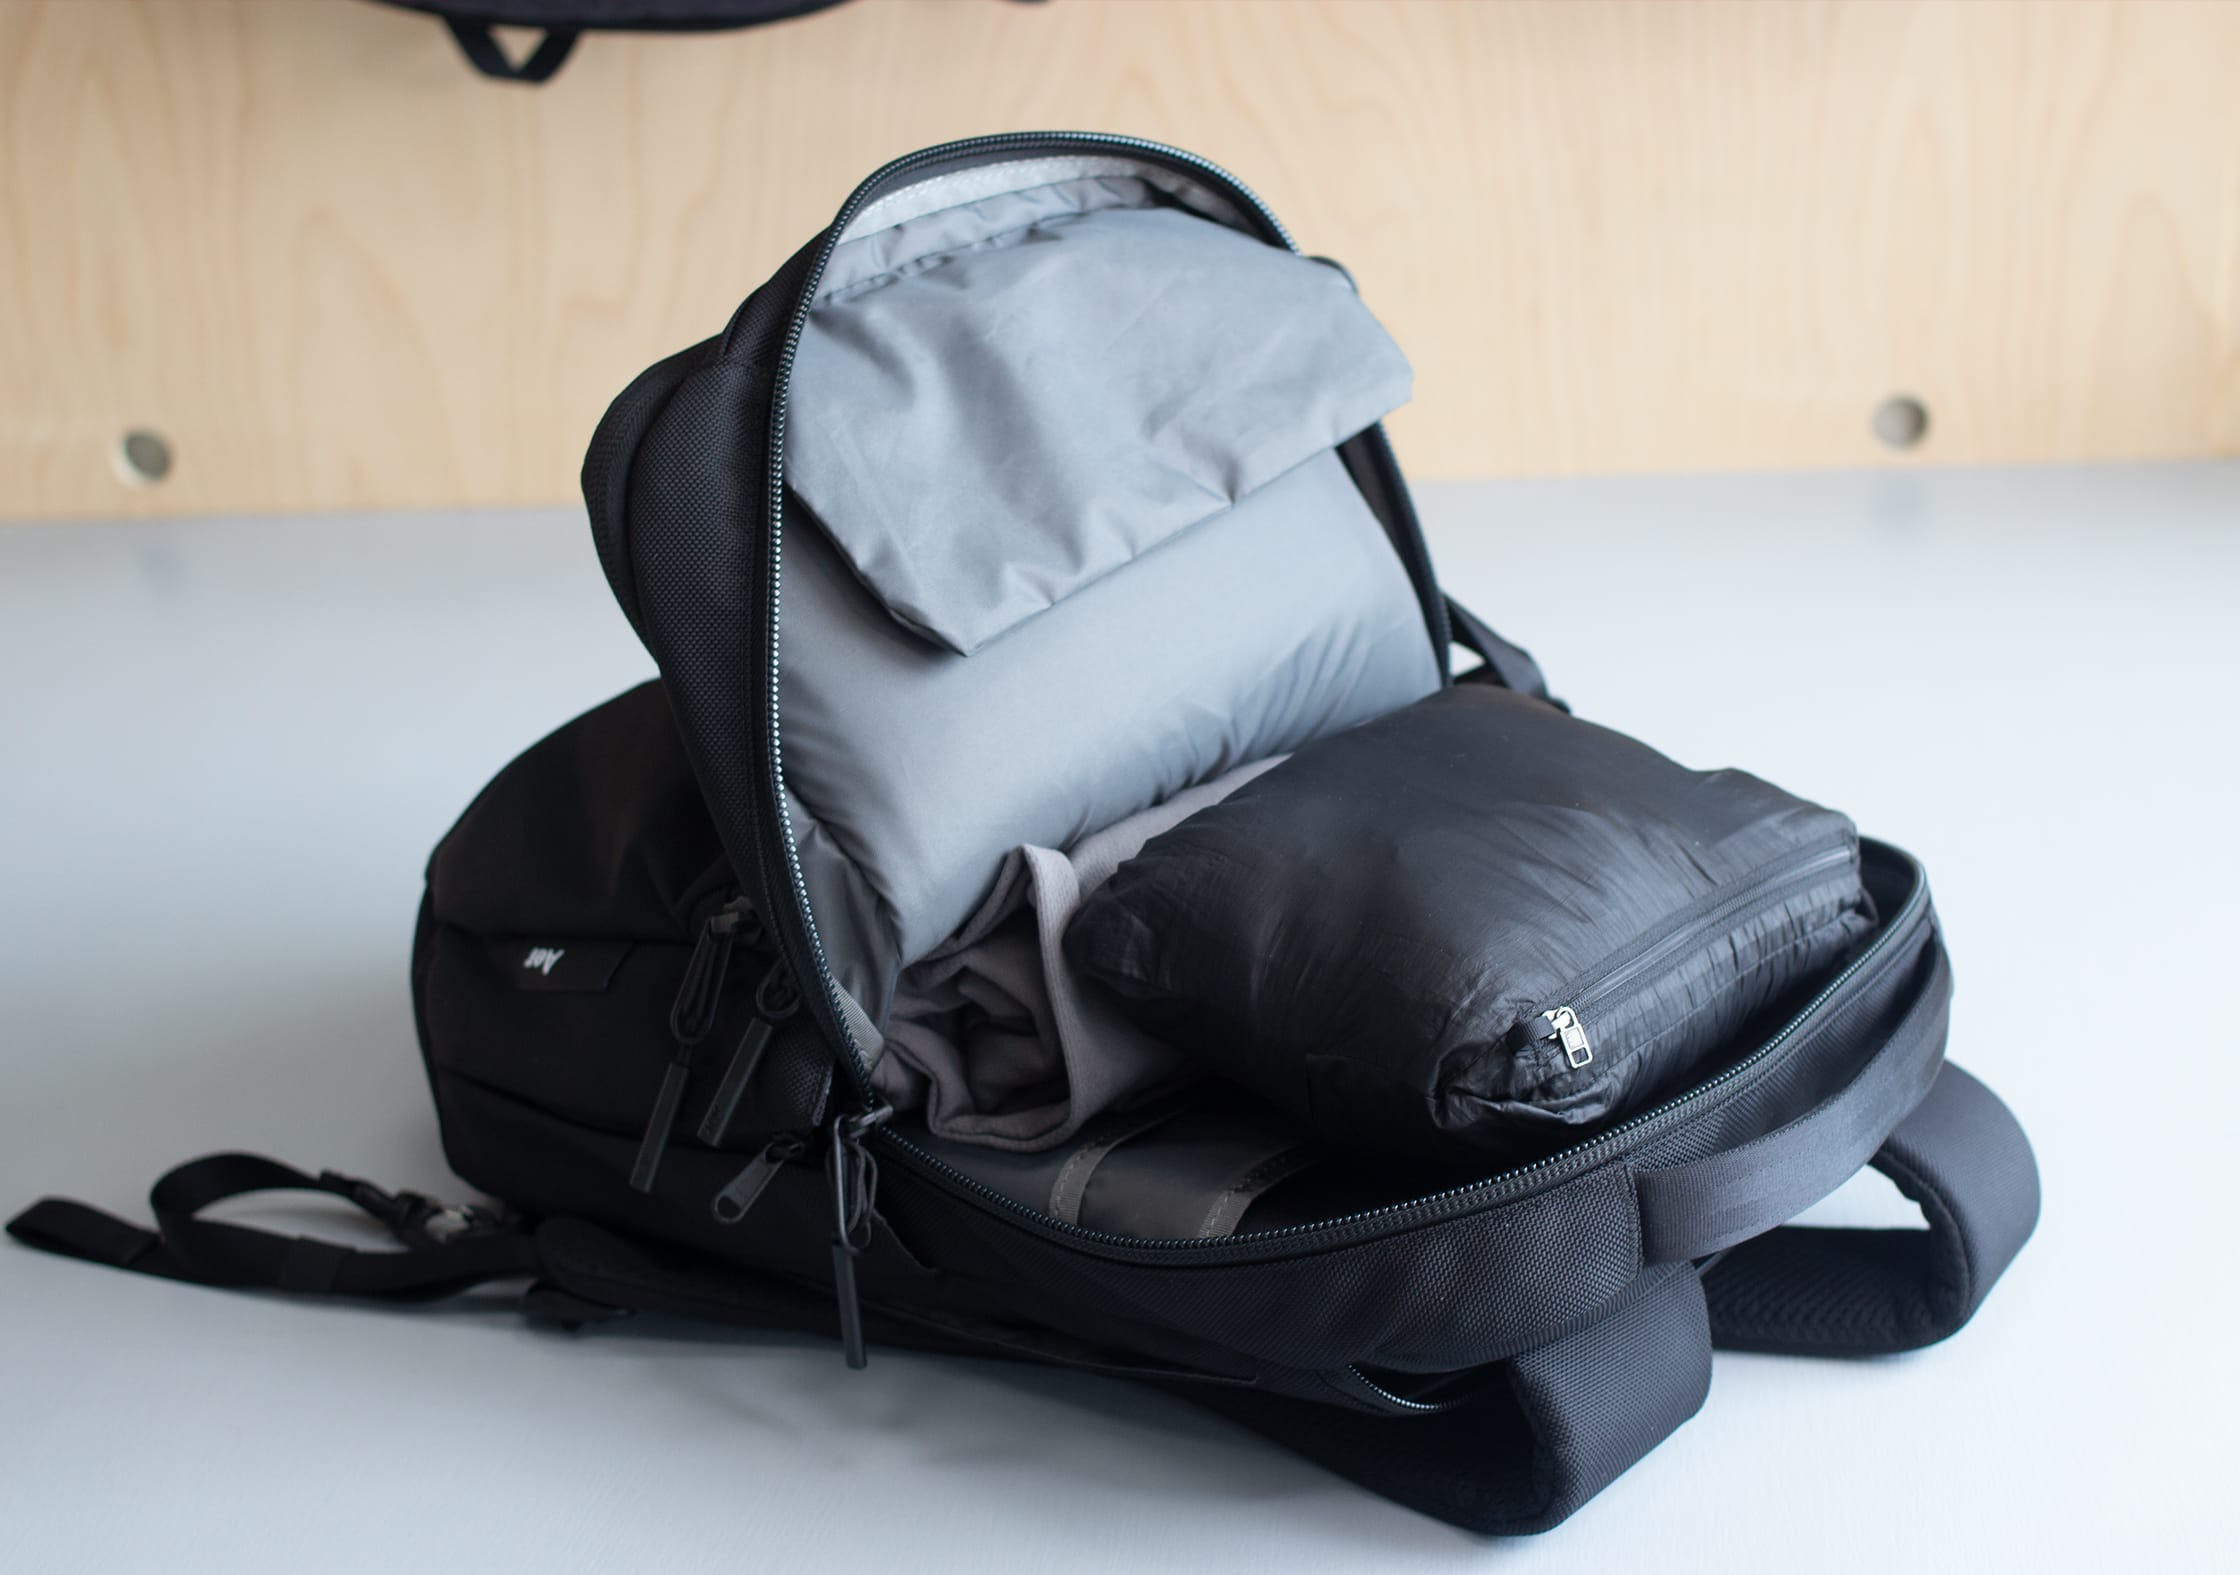 Aer Flight Pack 2 Main Compartment